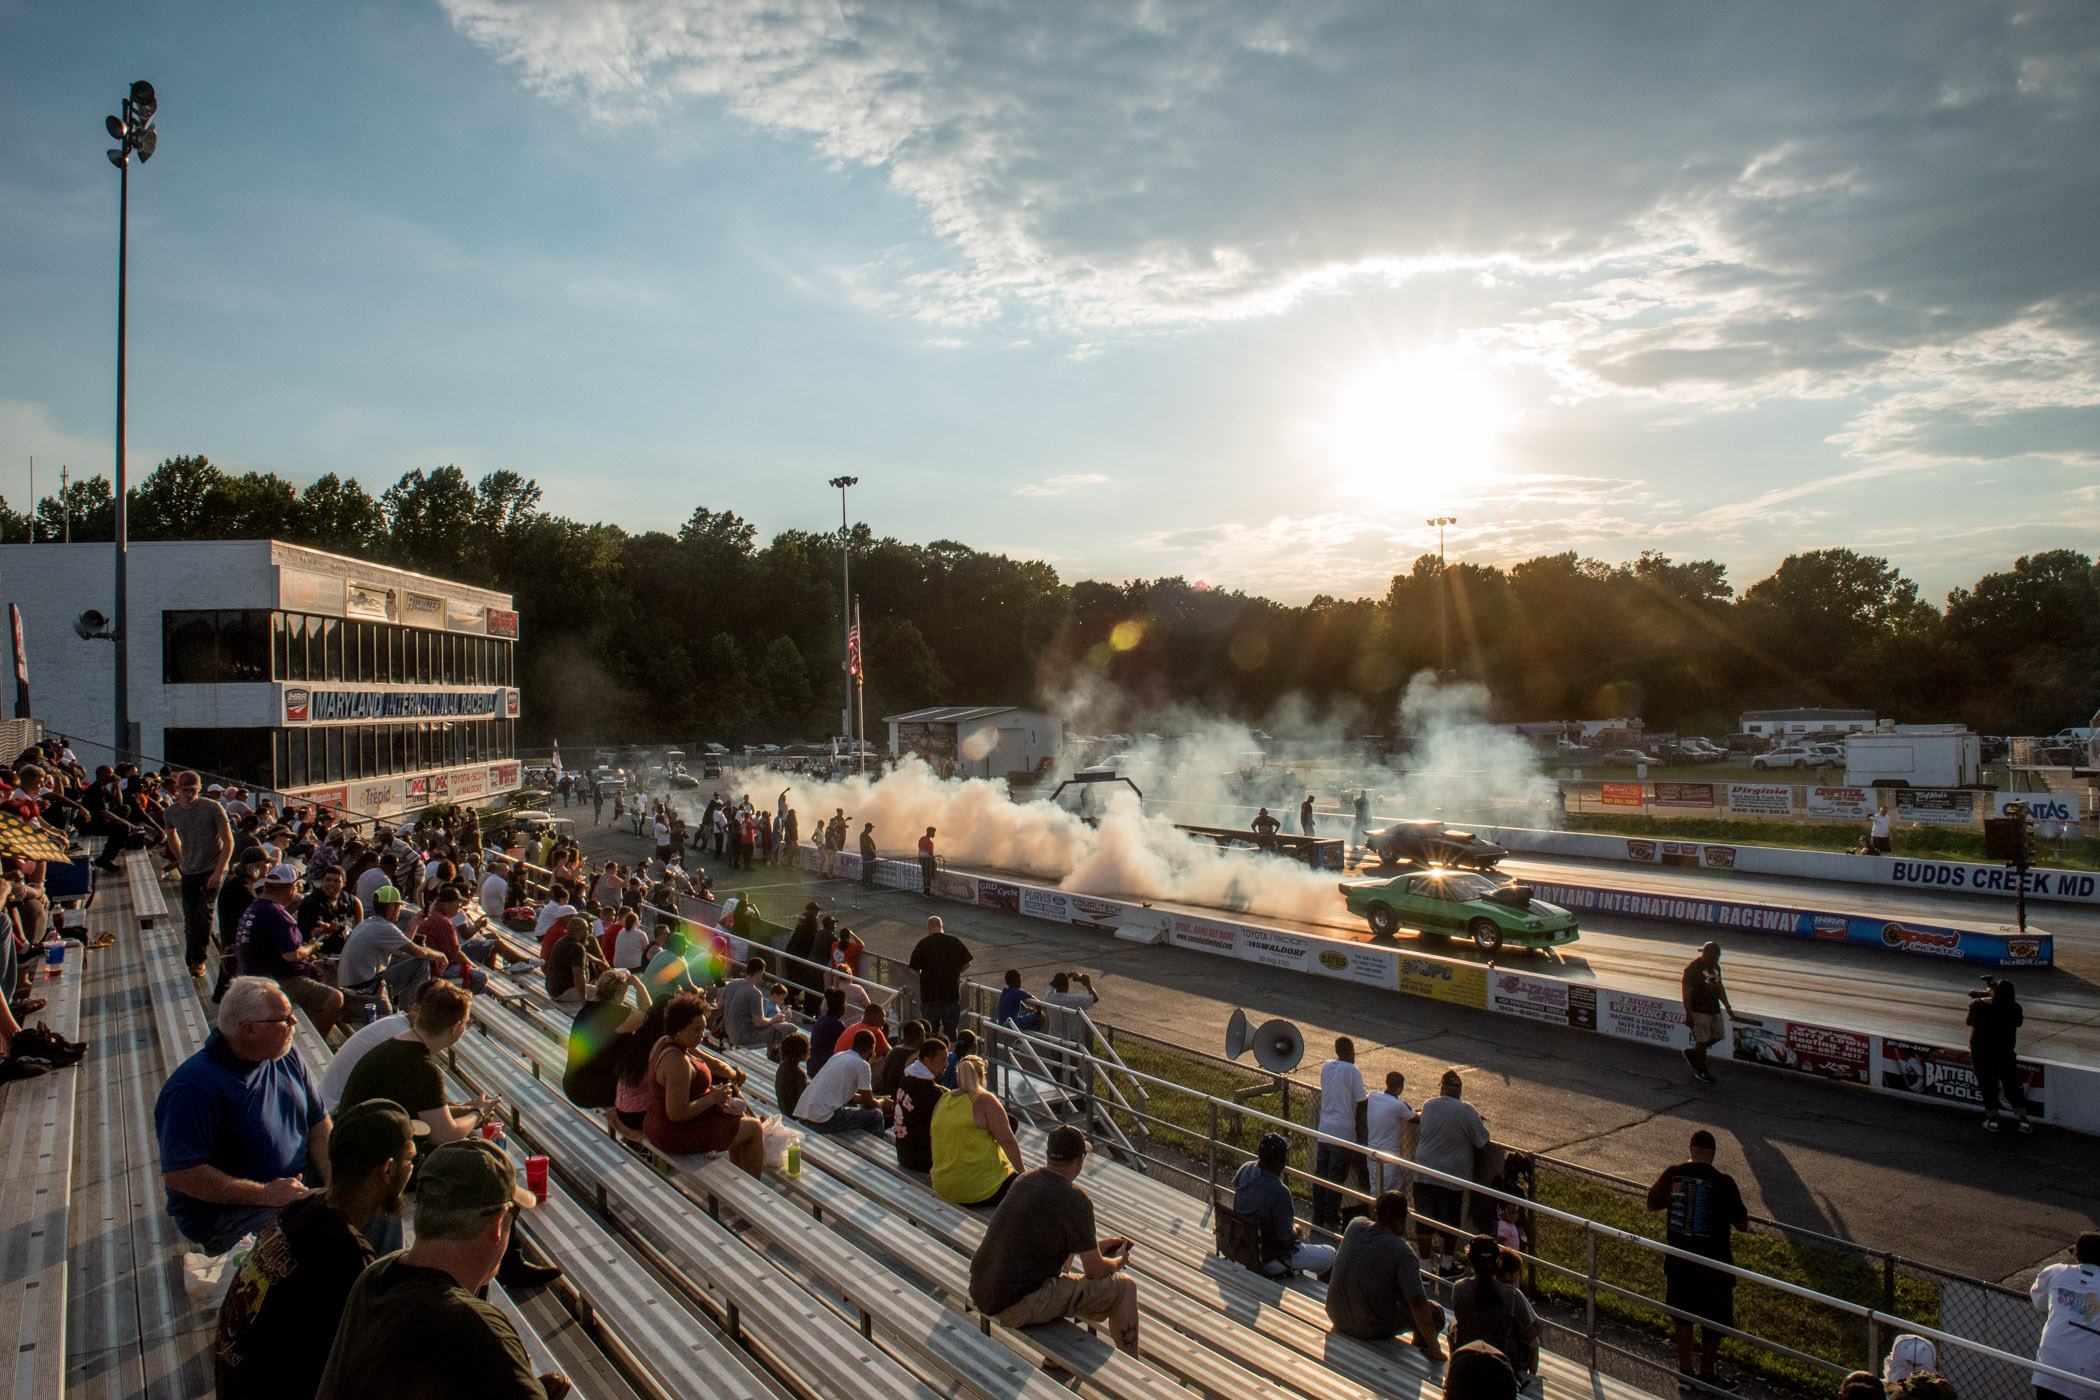 Crowds watch cars race from the stands during the War On Wheels event at the Maryland International Speedway in Mechanicsville, Md., on Wednesday, June 21, 2017. (Michael Ares / The Baltimore Sun)